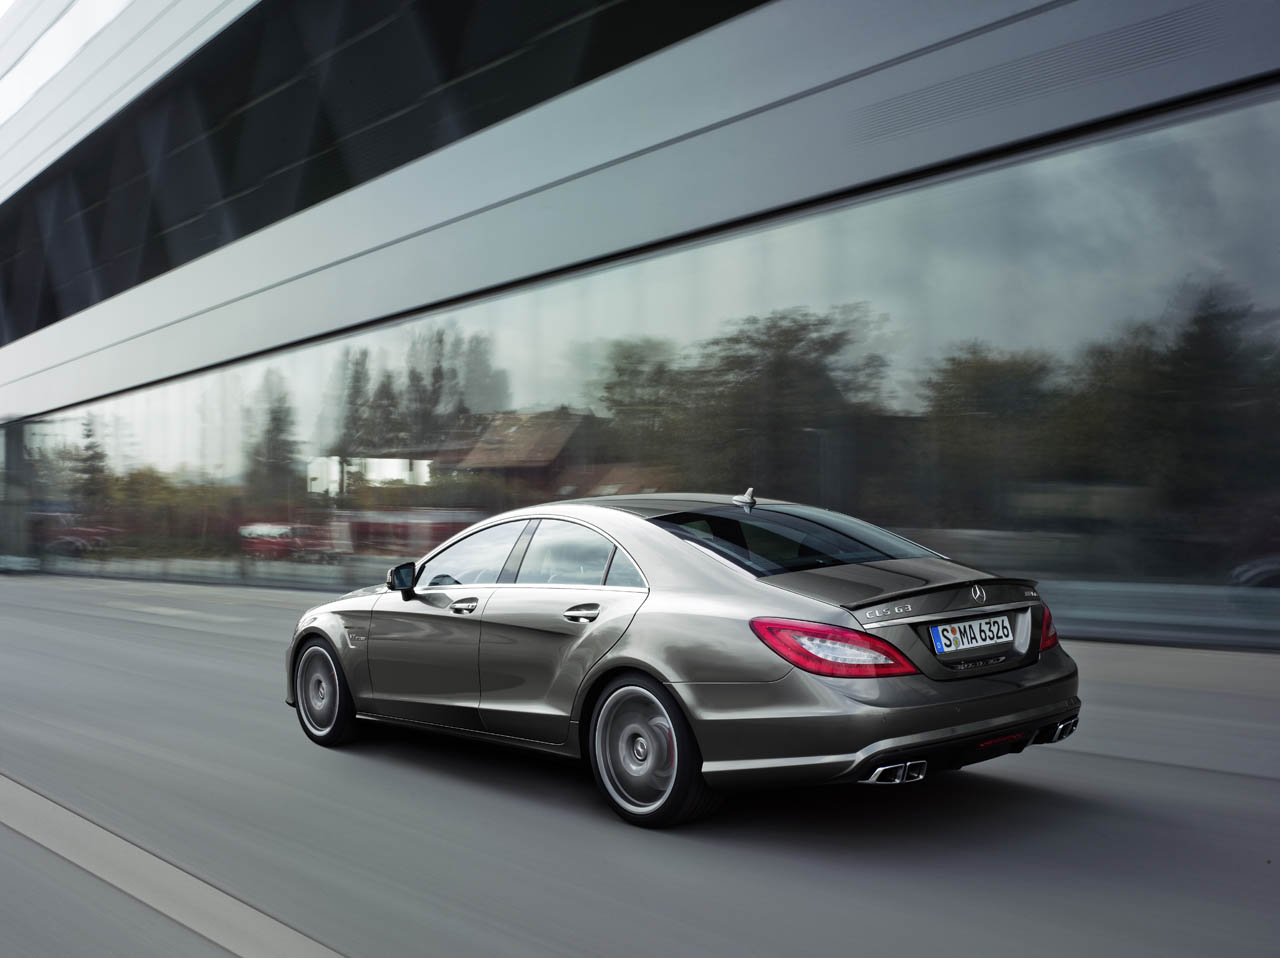 Mercedes-Benz CLS 63 AMG Performance Package photo 02